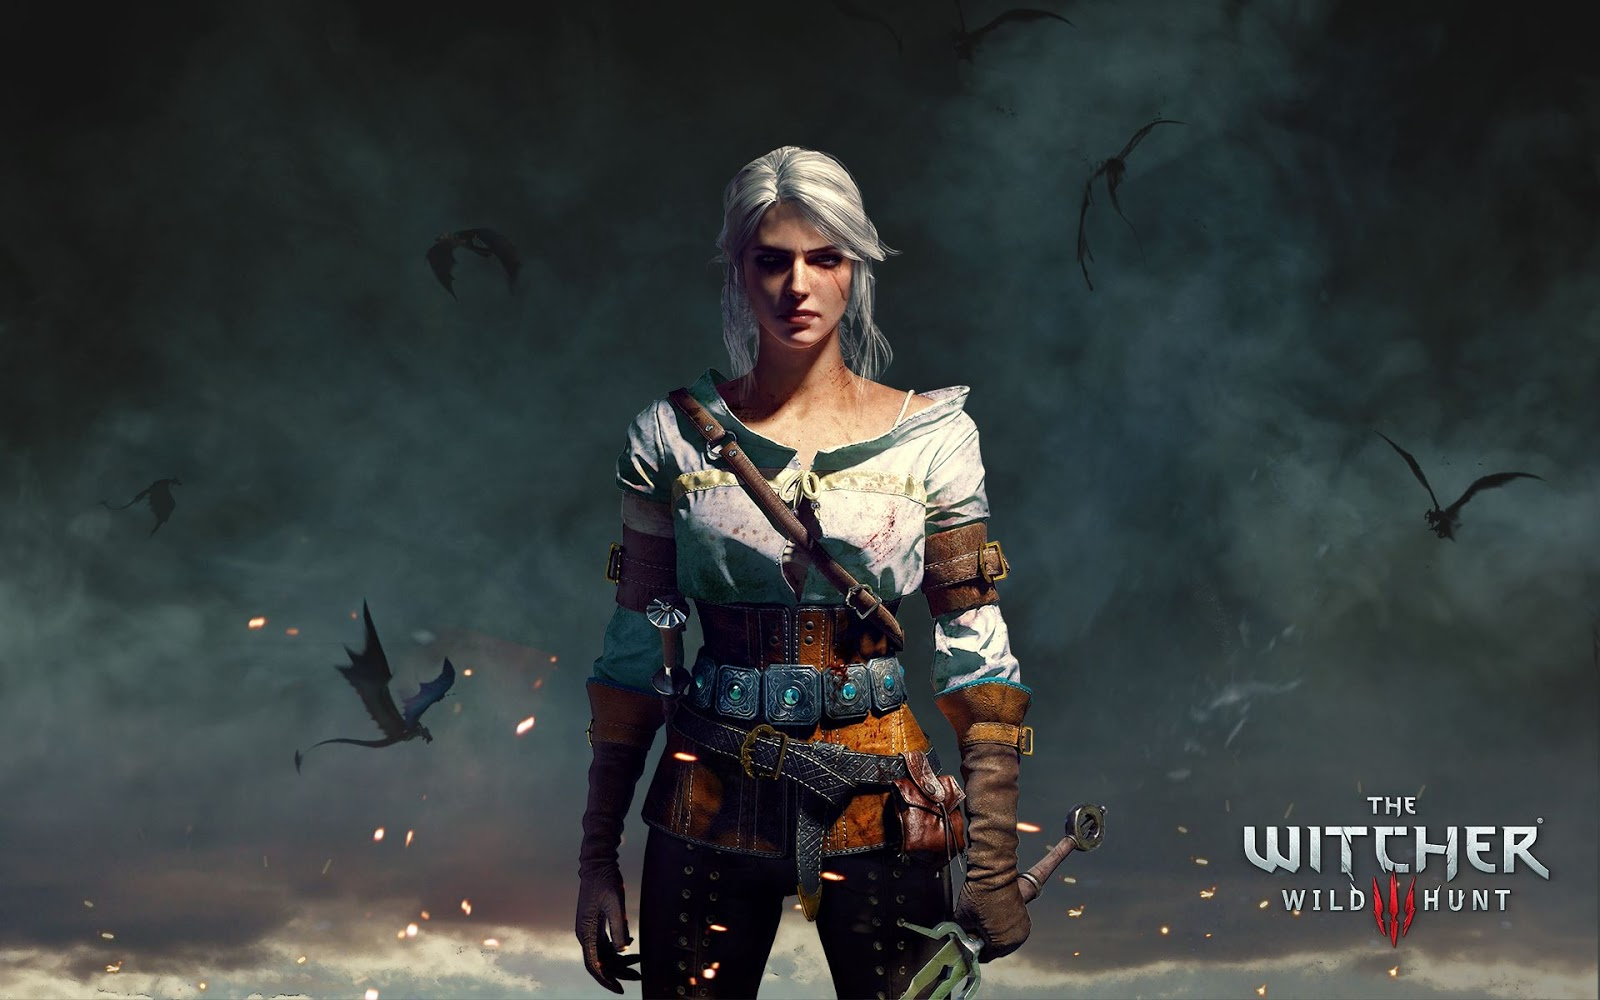 Witcher-wallpaper-for-laptop-hd-download